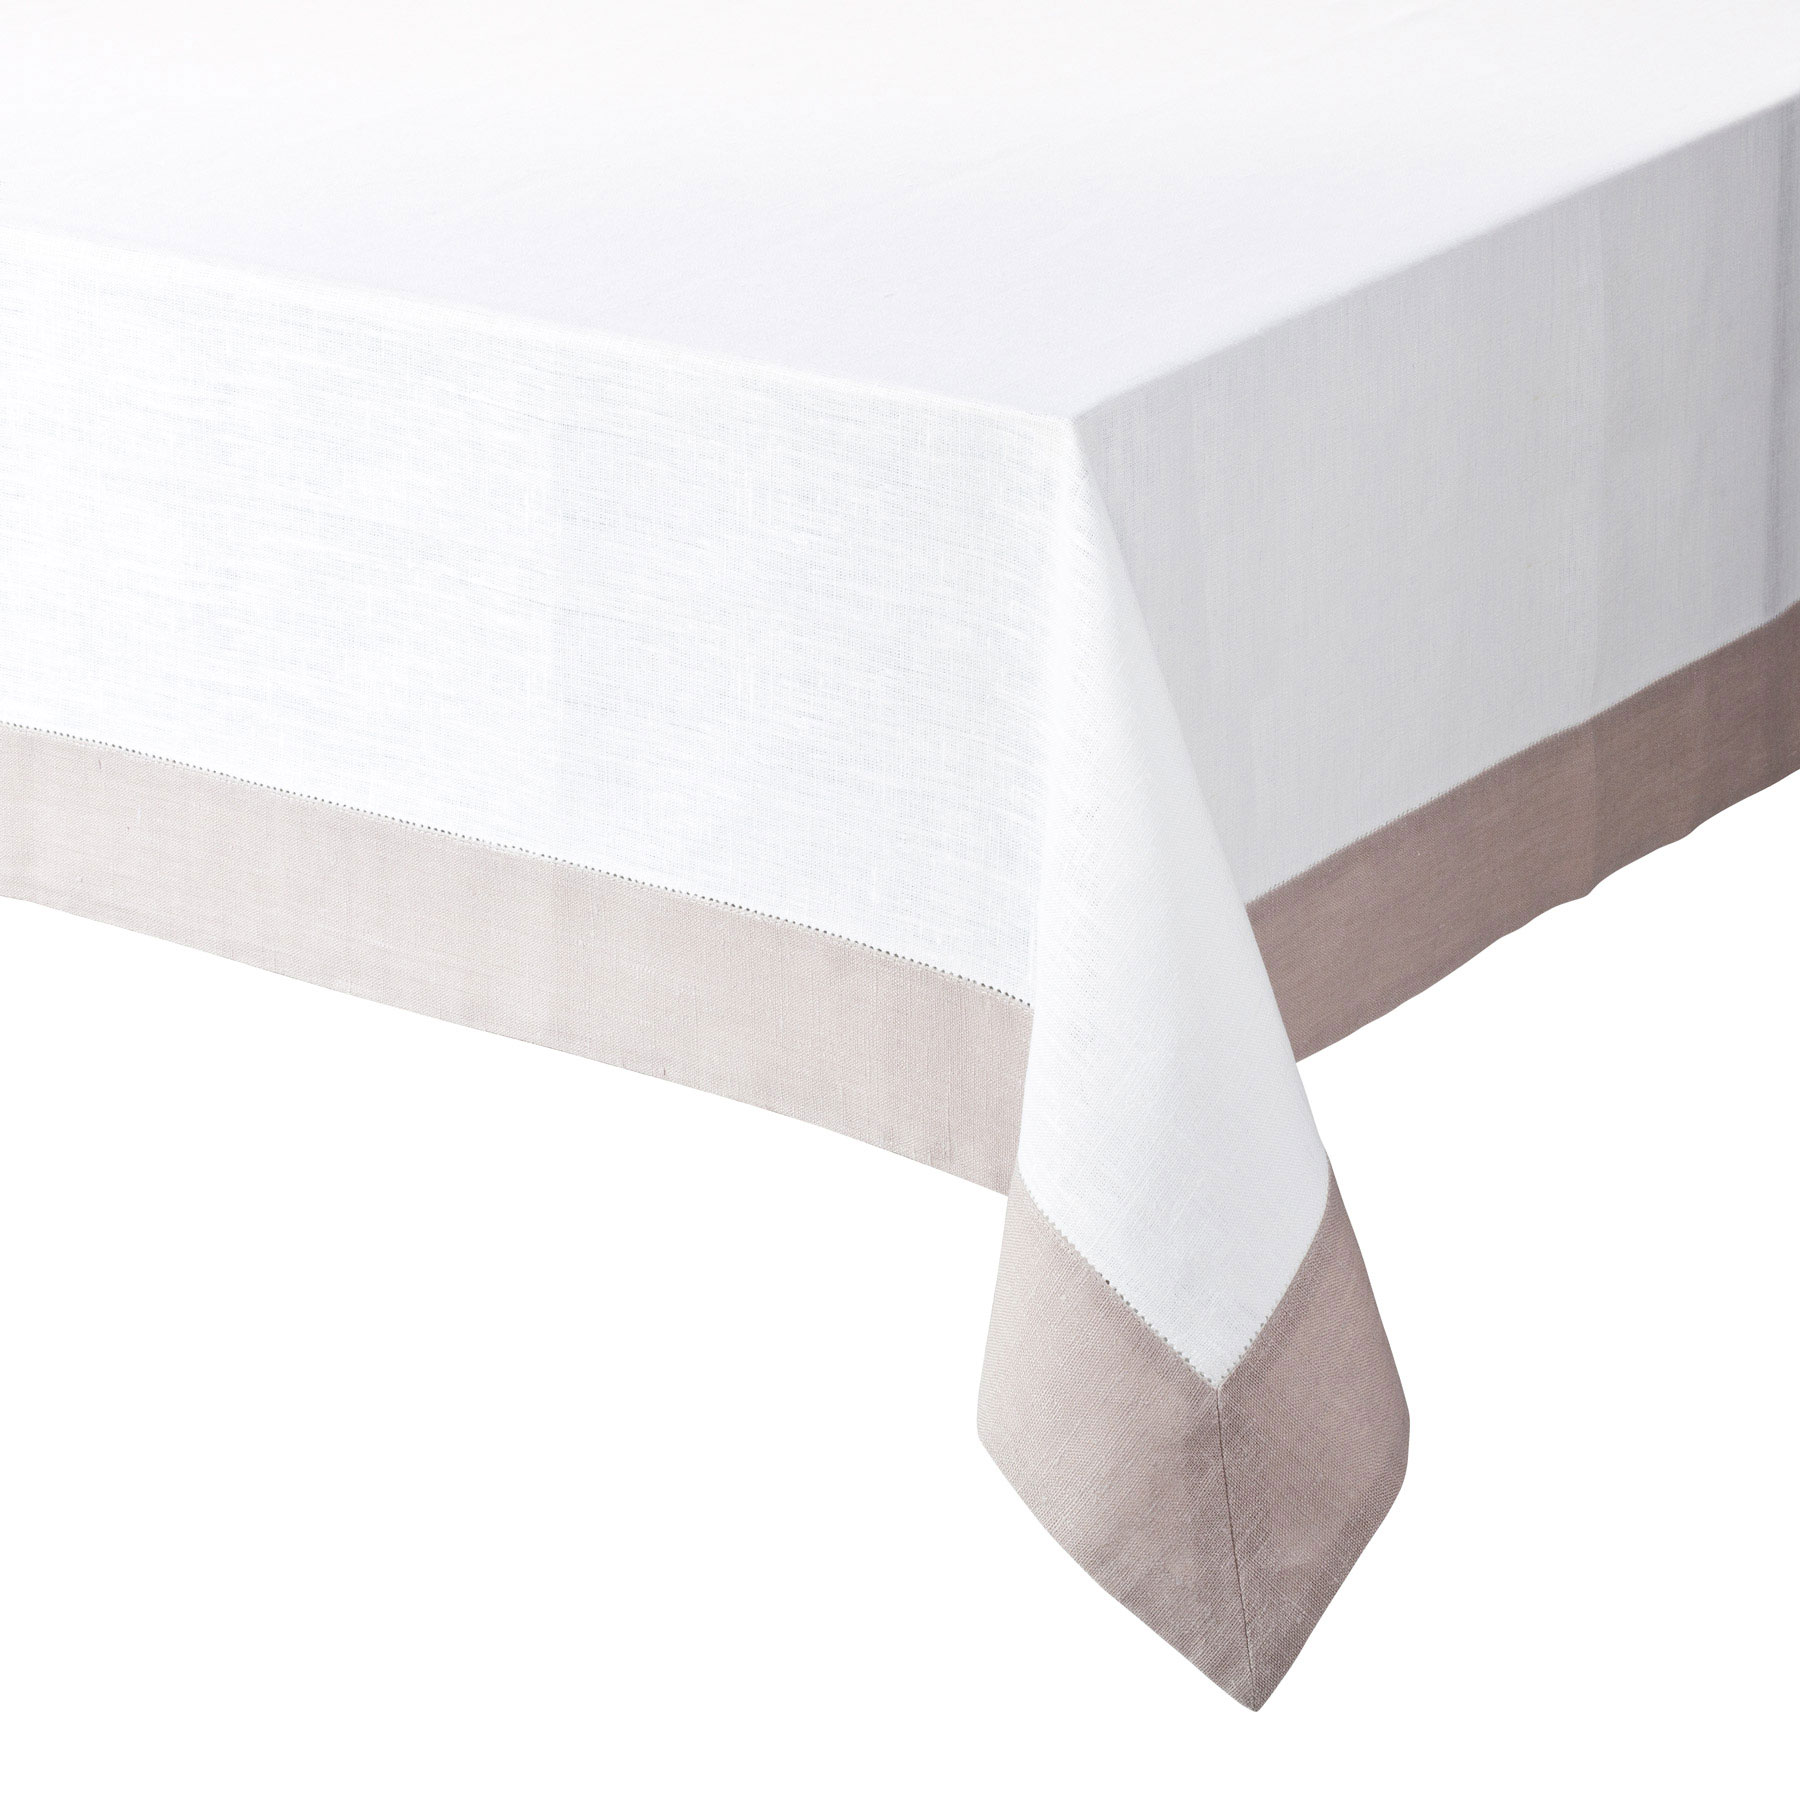 TABLECLOTH WITH BORDER<br />natural white and sand